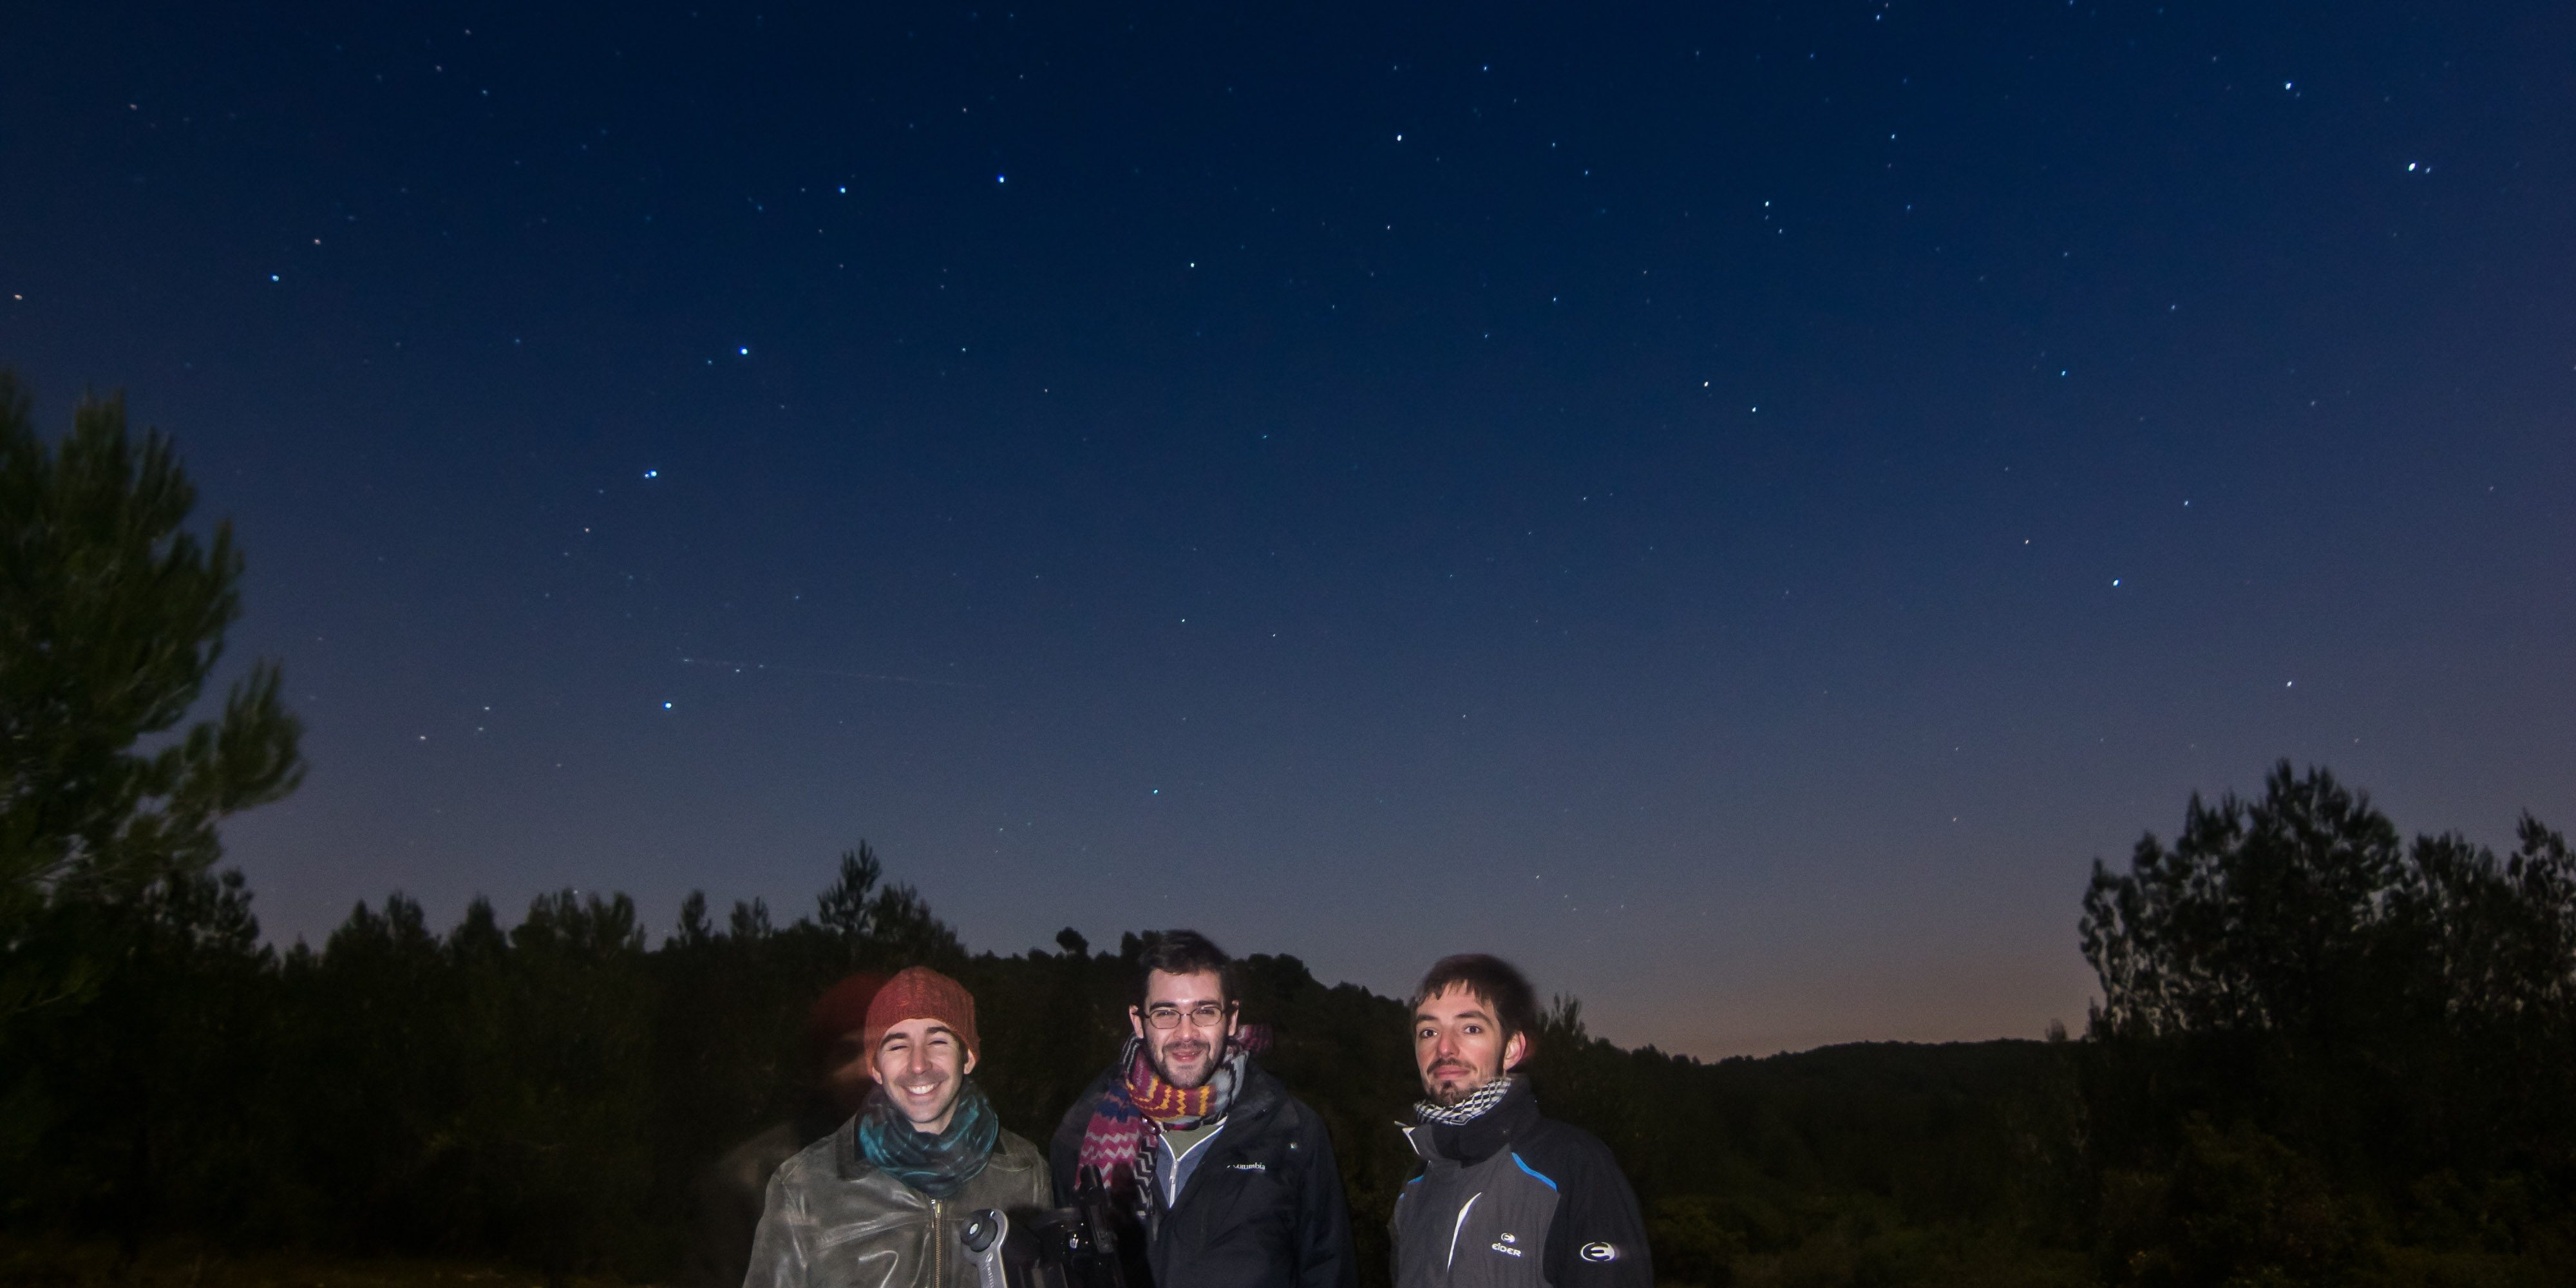 Report on an Occultation Near Marseille - First Scientific